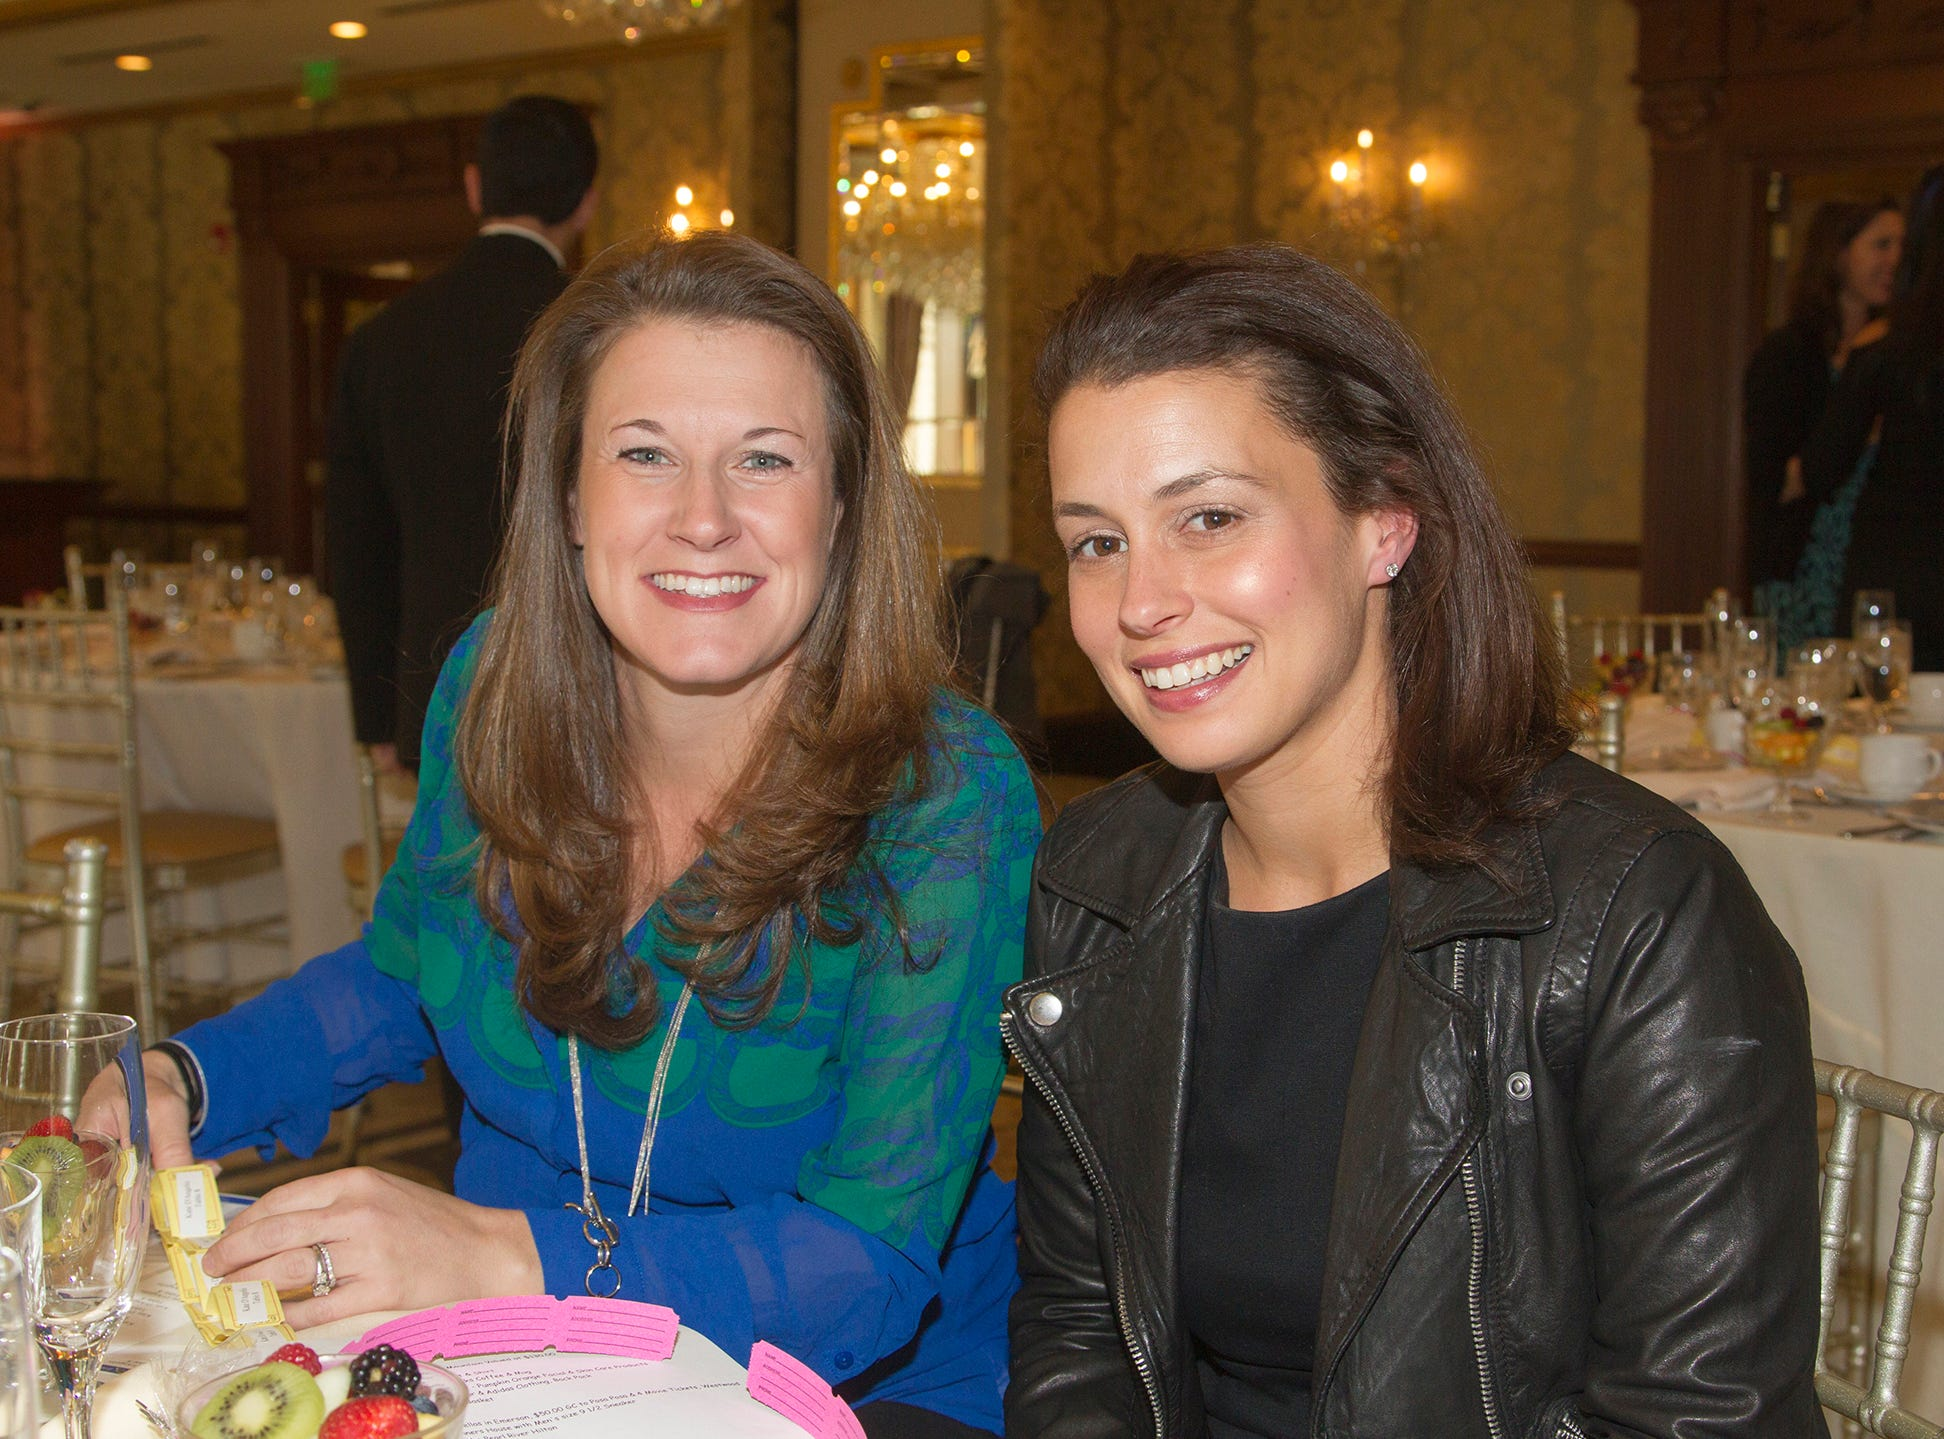 Katie D'Angelis, Marisa Foster-Moore. Josephine's Garden, part of Hackensack Meridian Health, held its luncheon gala at Season's in Washington Township. The mission of this organization is to provide a place of respite, joy and hope to children battling cancer. 11/14/2018